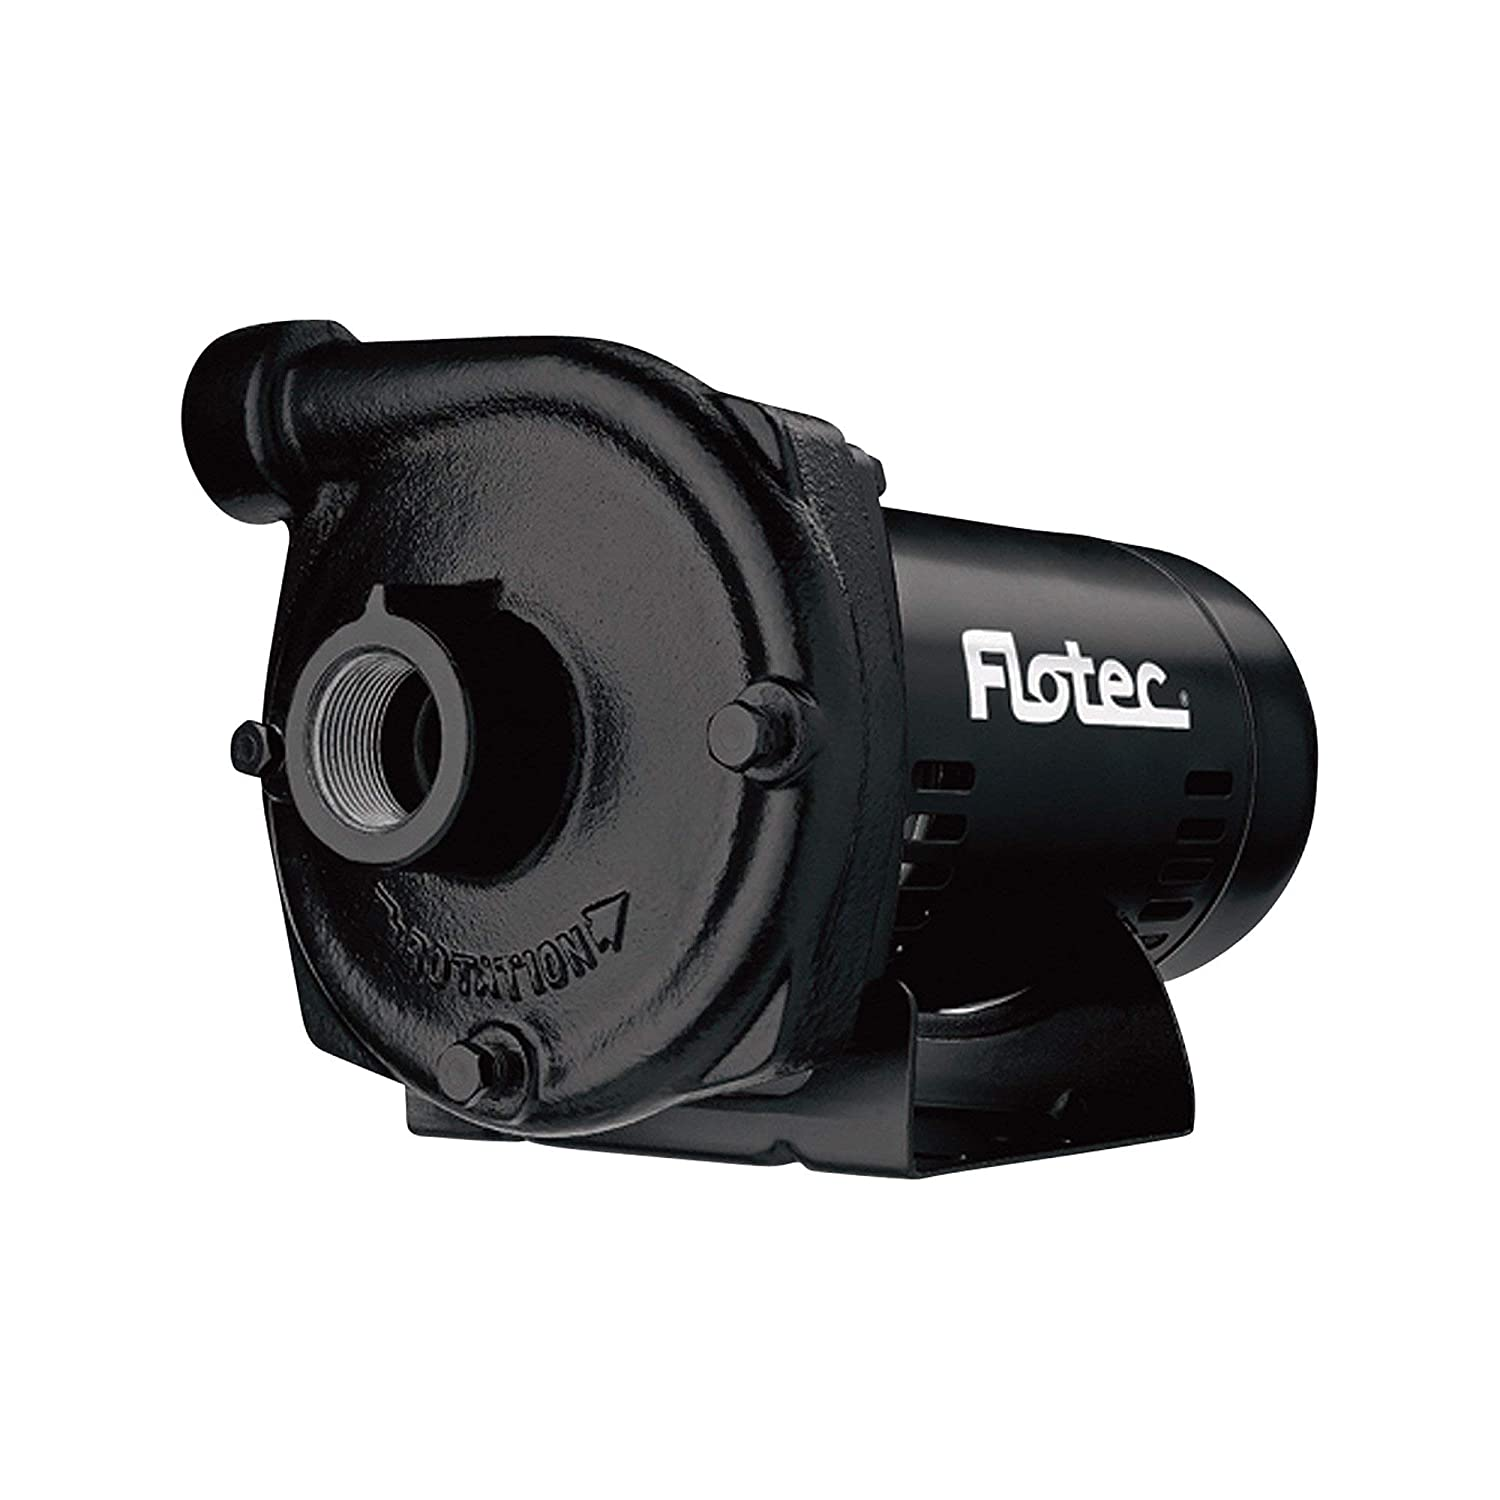 Flotec Cast Iron Centrifugal Water Pump - 2,580 GPH, 3/4 HP, 1/1/4in. Model Number FP5522